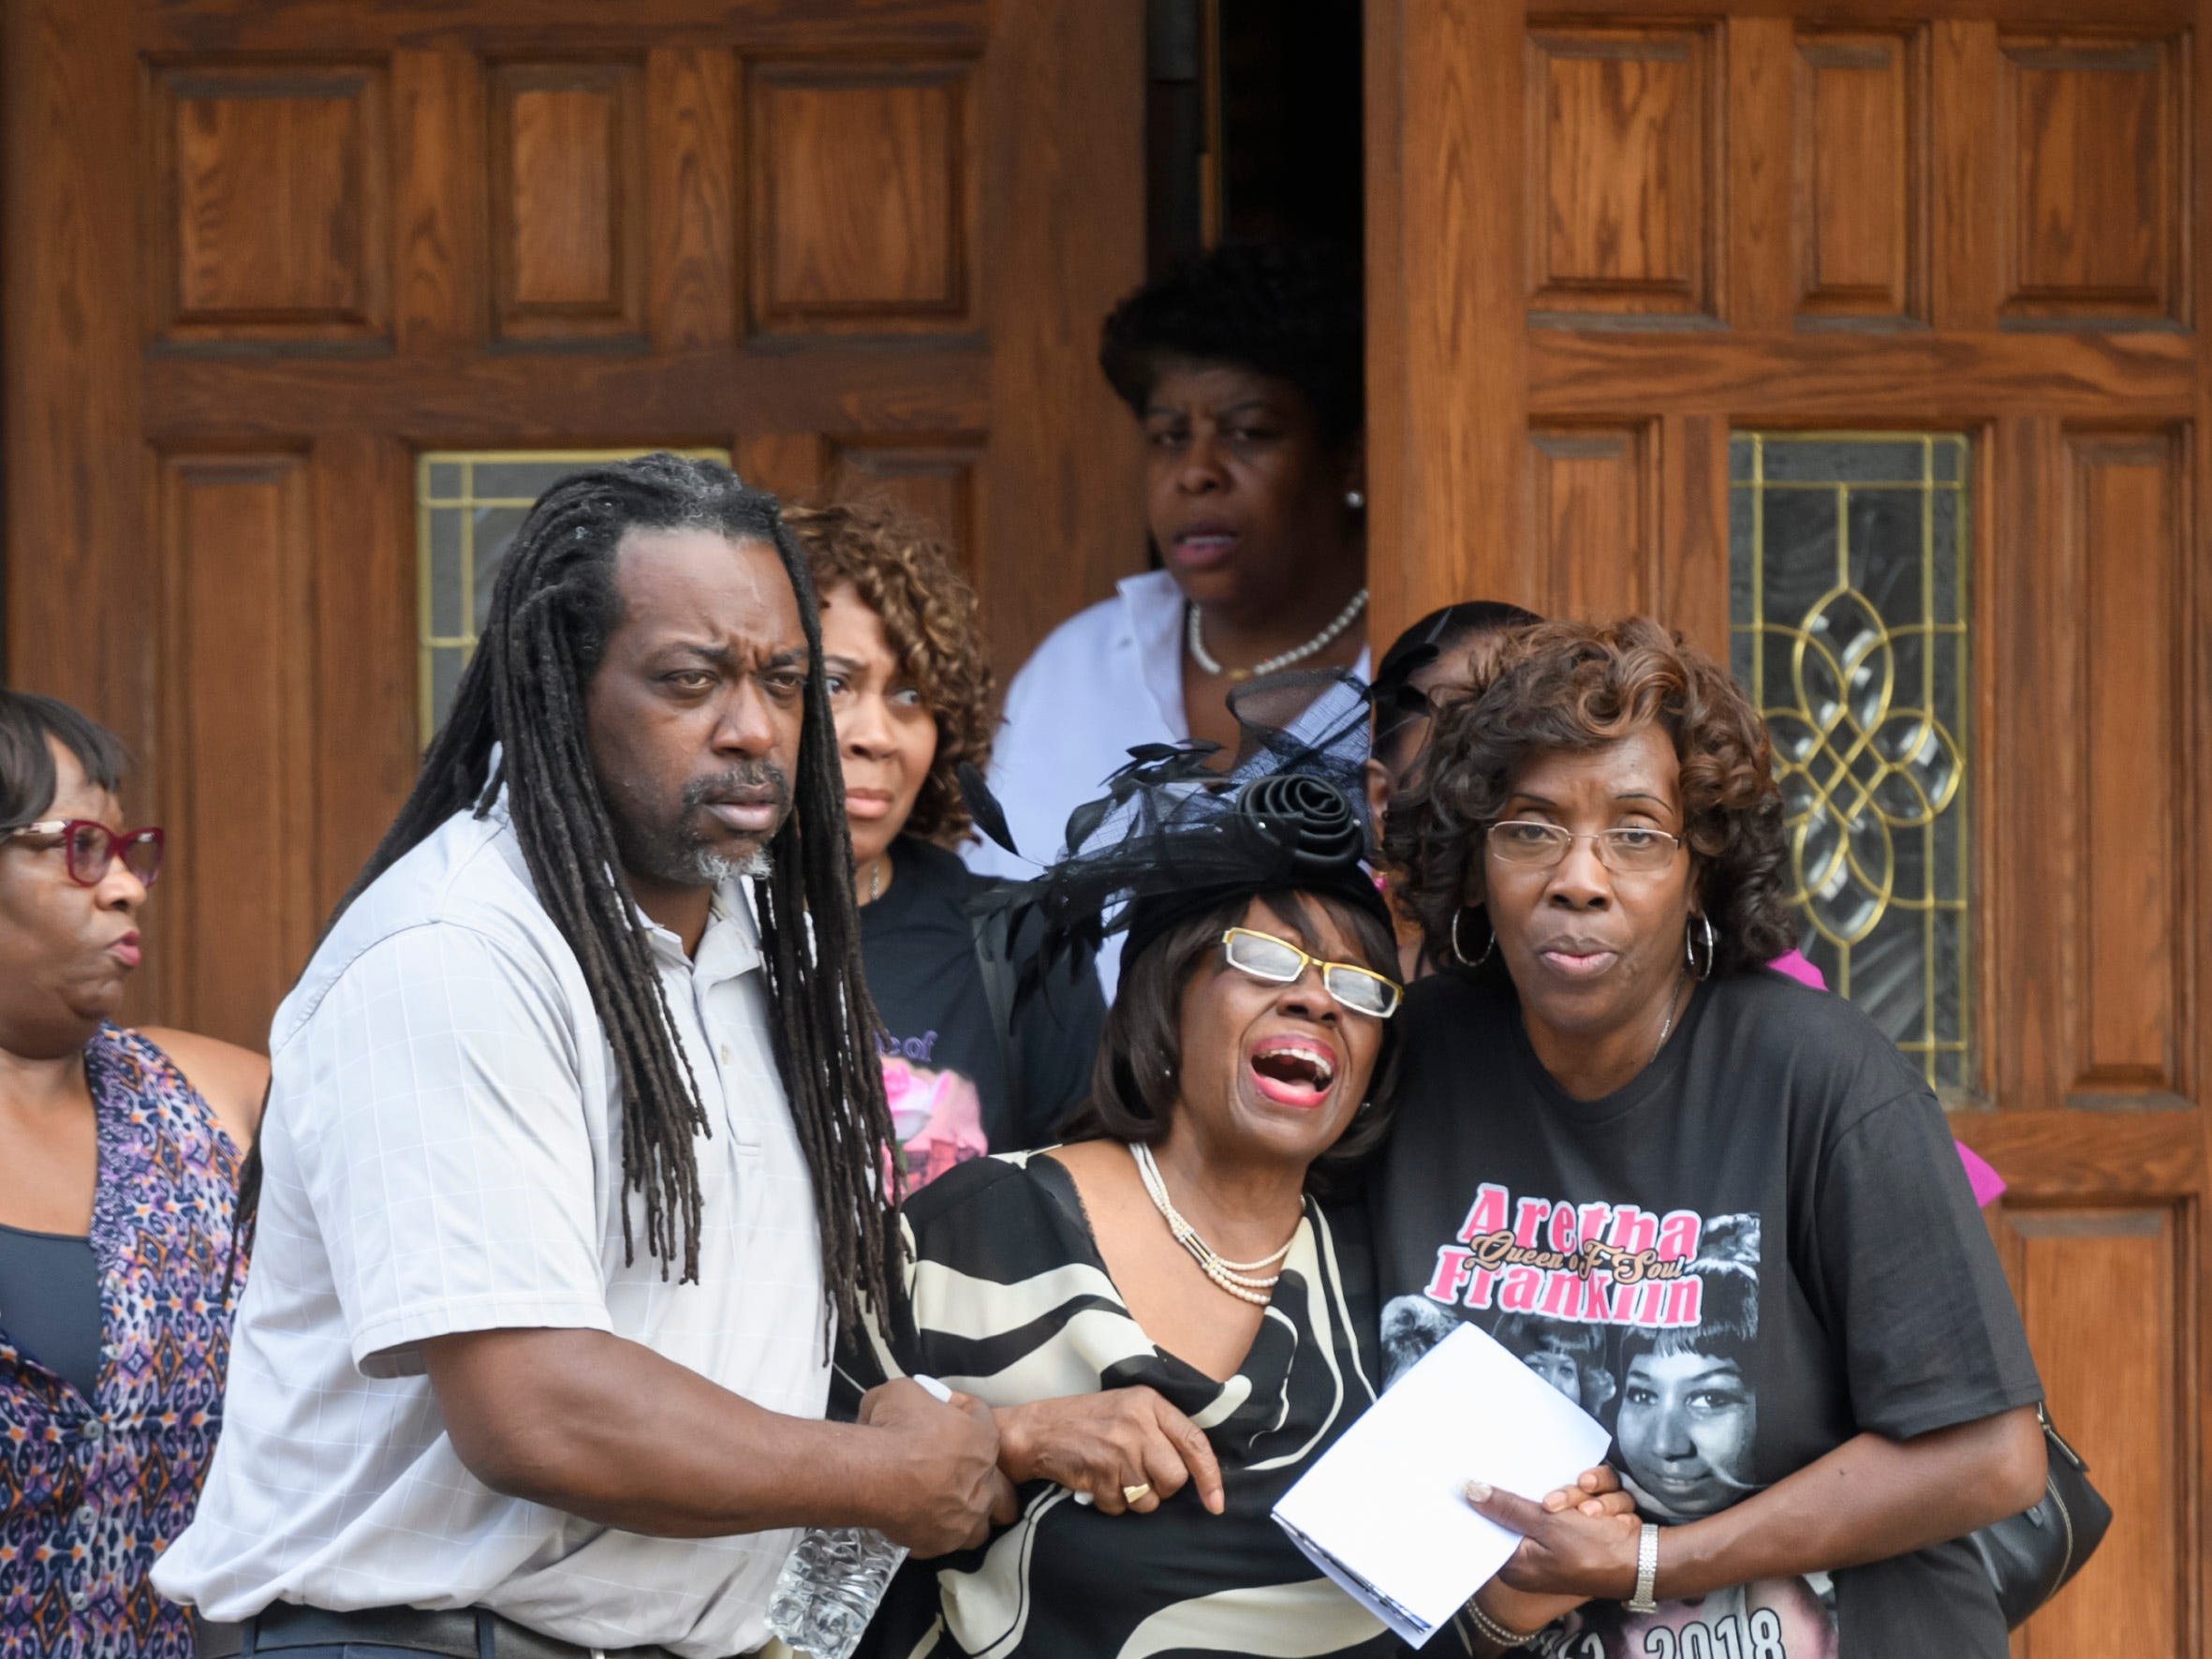 Fannie Tyler, center, long-time personal secretary for Aretha Franklin, is helped out of New Bethel Baptist Church in Detroit  after the public visitation on August 30, 2018.